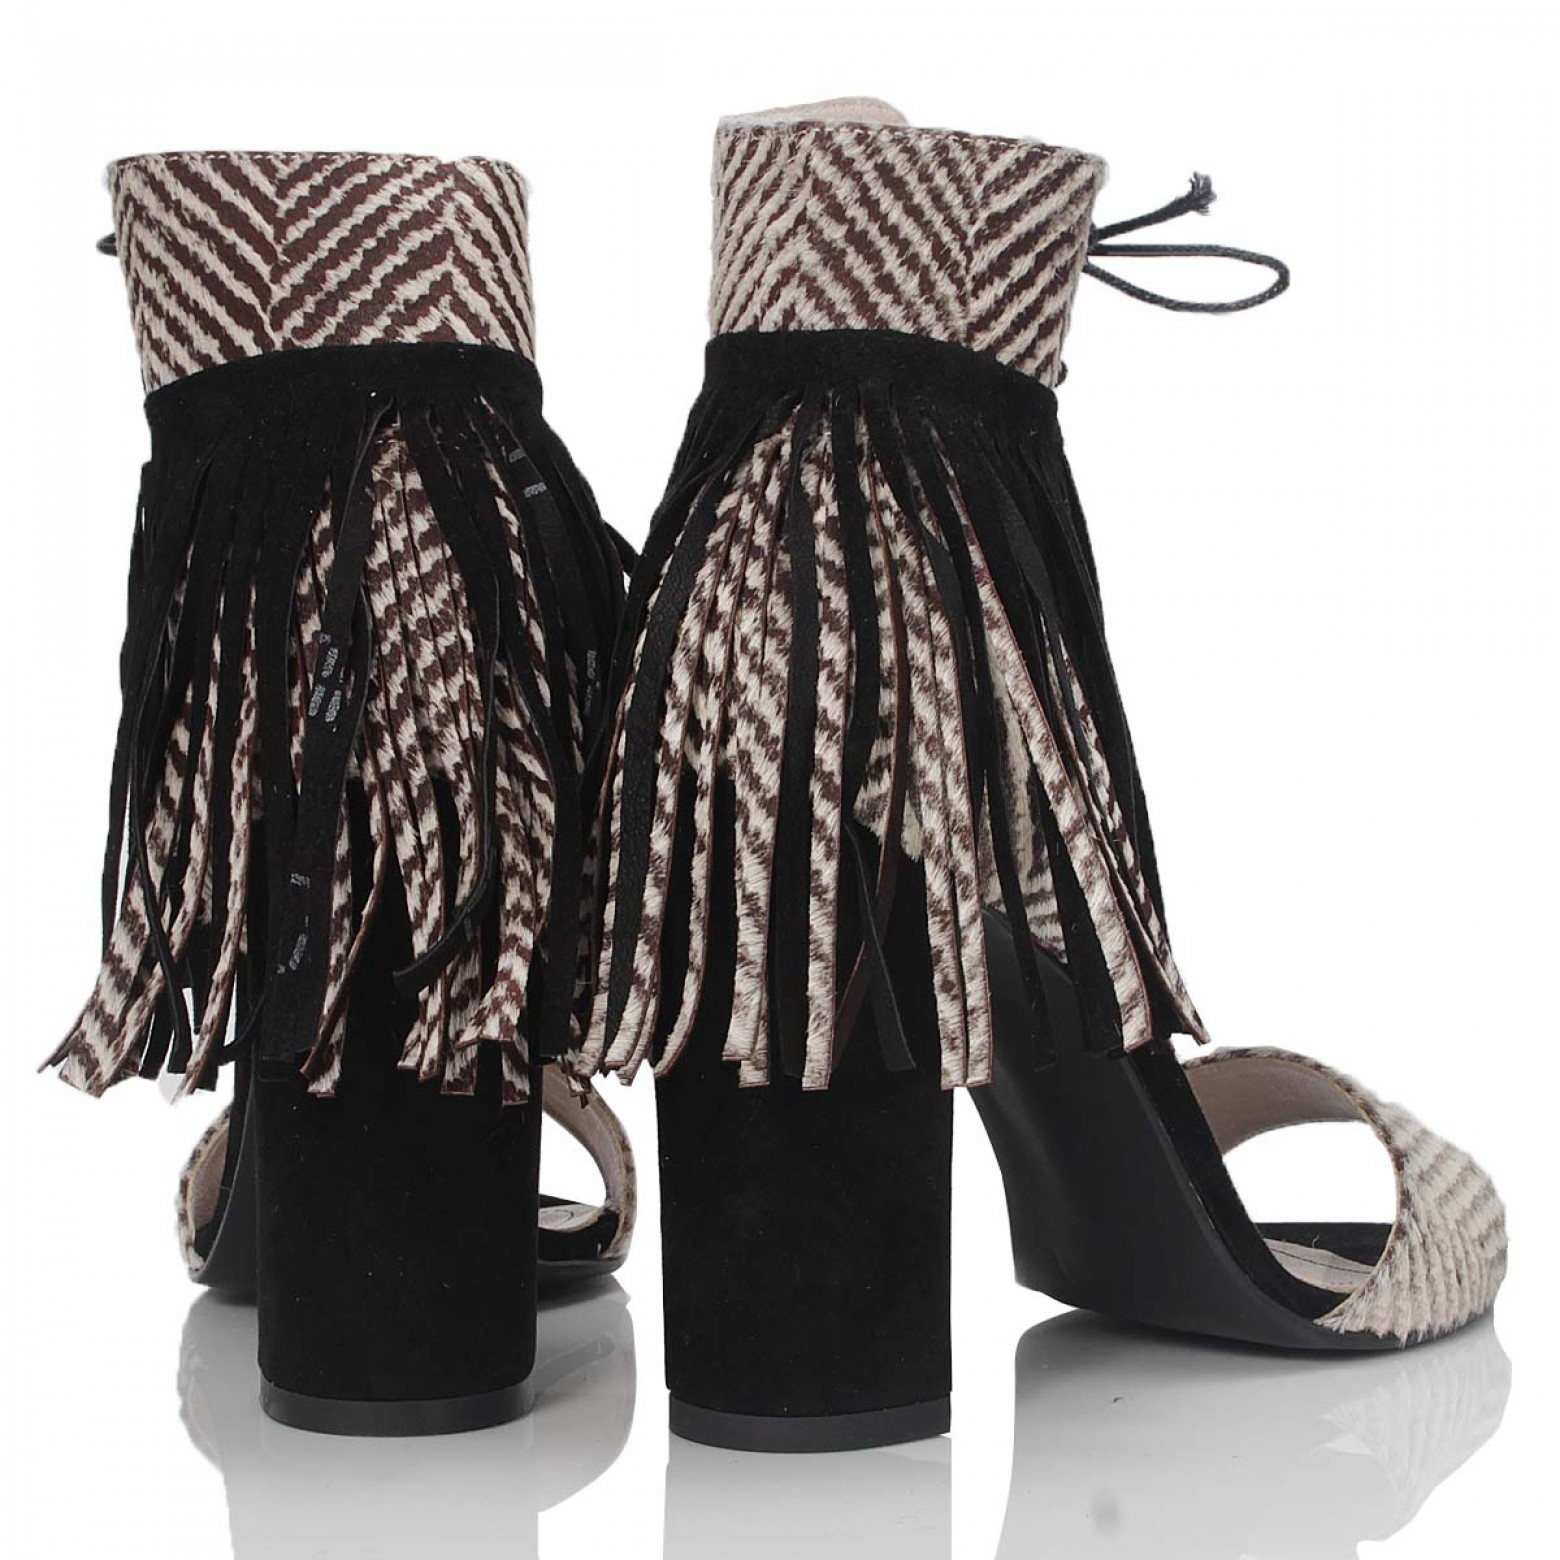 SANDALE BLACK FRINGES